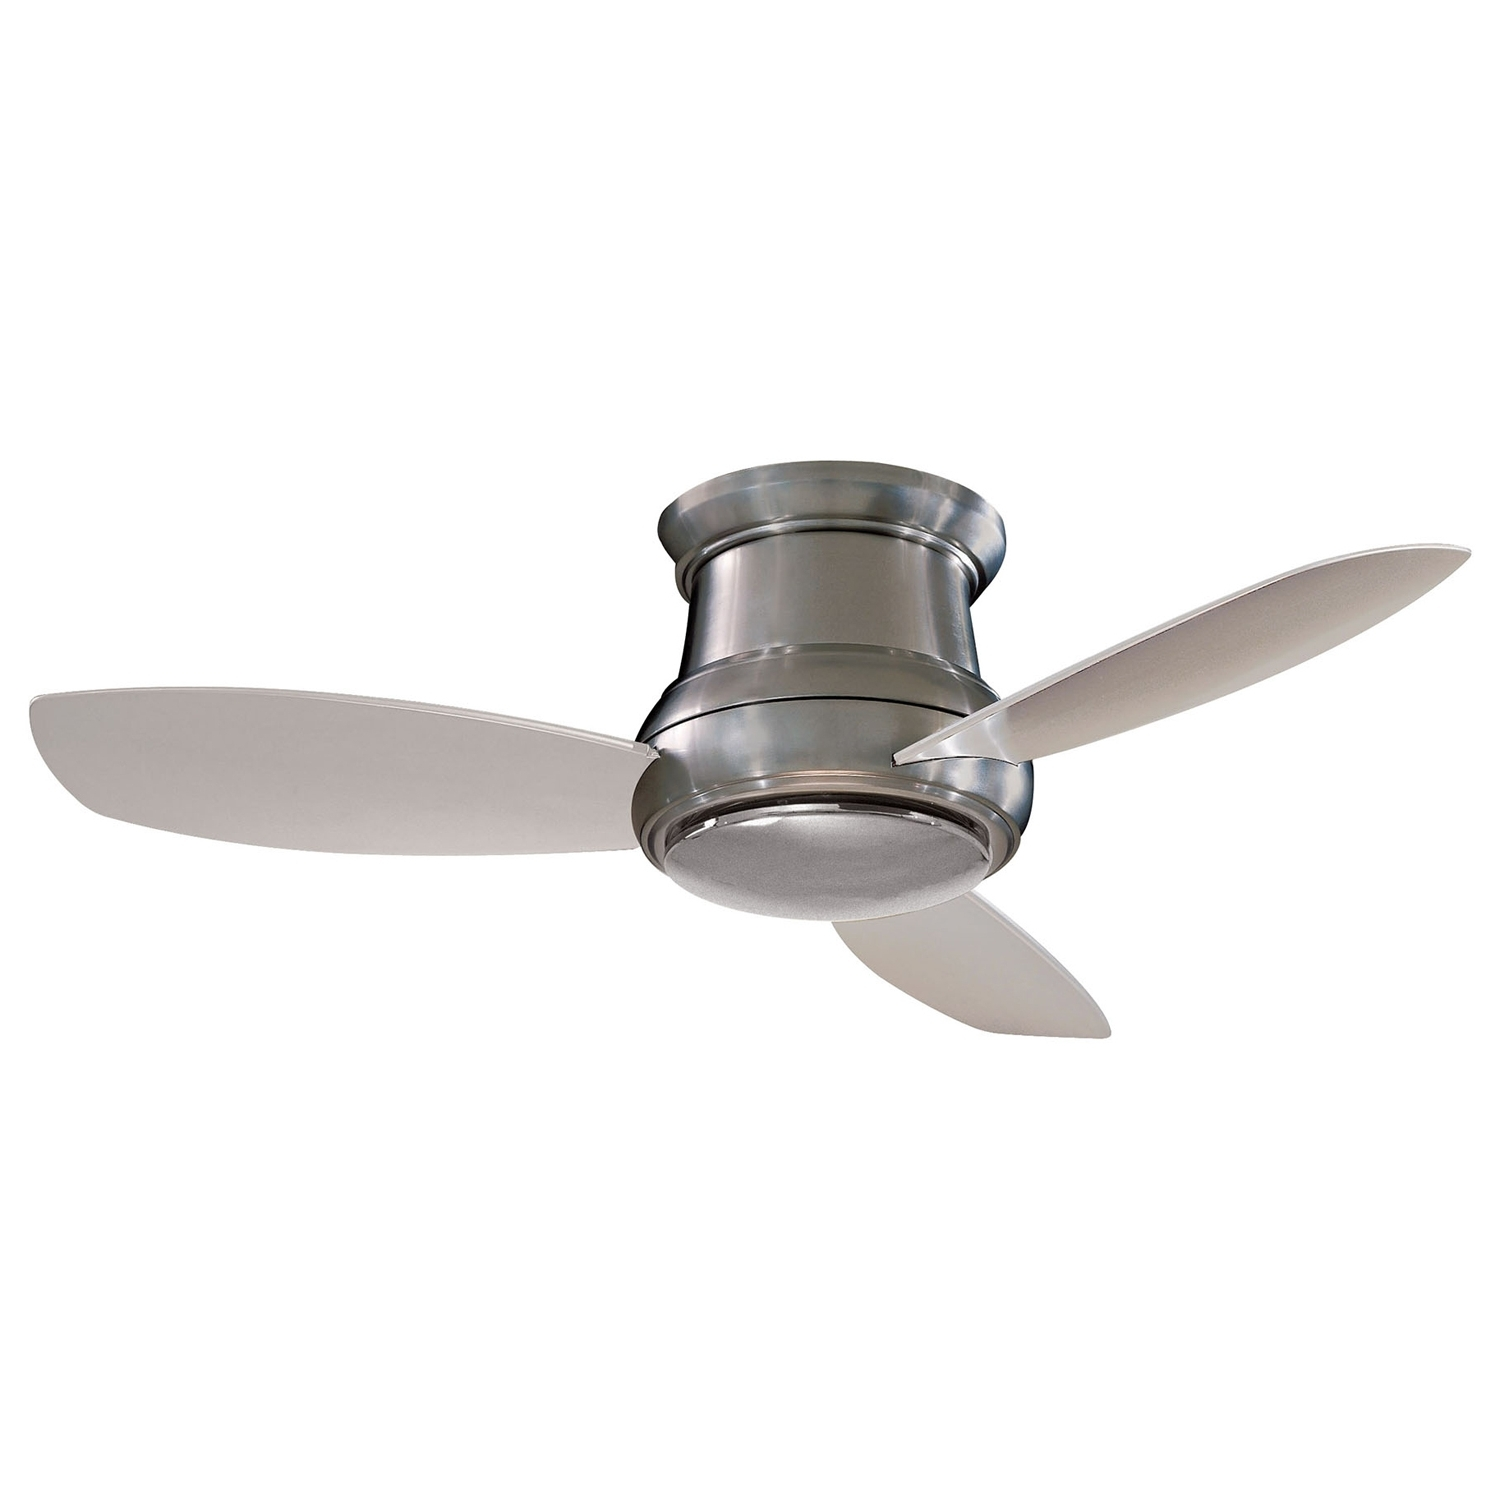 Most Popular 36 Inch Outdoor Ceiling Fans With Light Flush Mount Regarding Small Ceilin Amazing 36 Ceiling Fans With Lights Flush Mount (View 13 of 20)